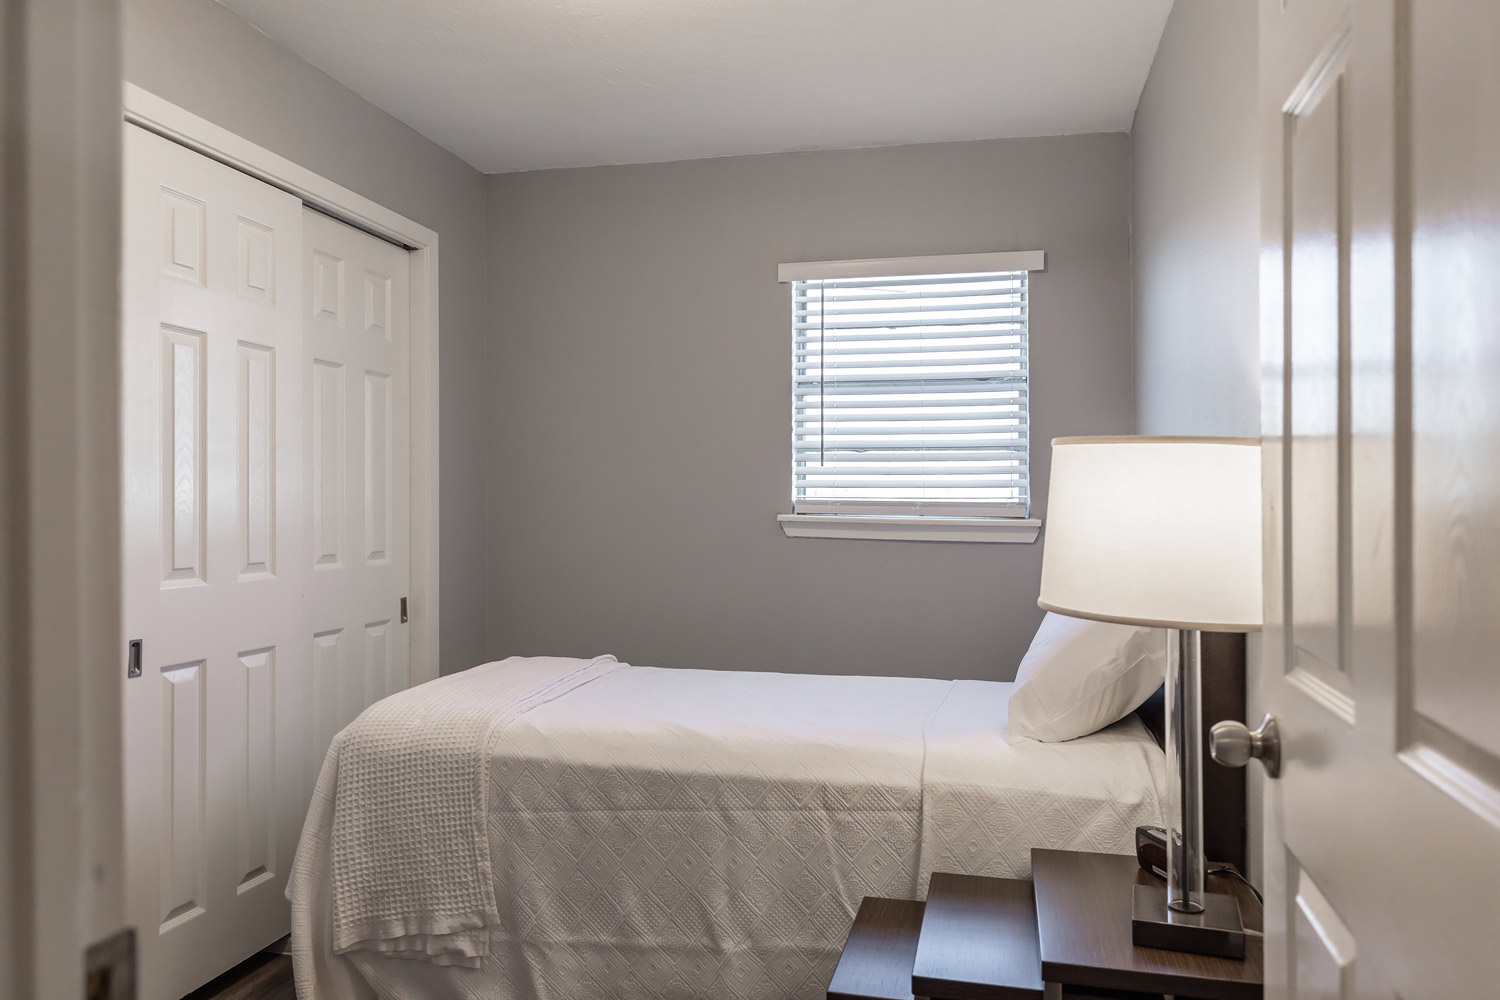 Warm Color Scheme Bedroom at The Five Points at Texas Apartments in Texas City, Texas